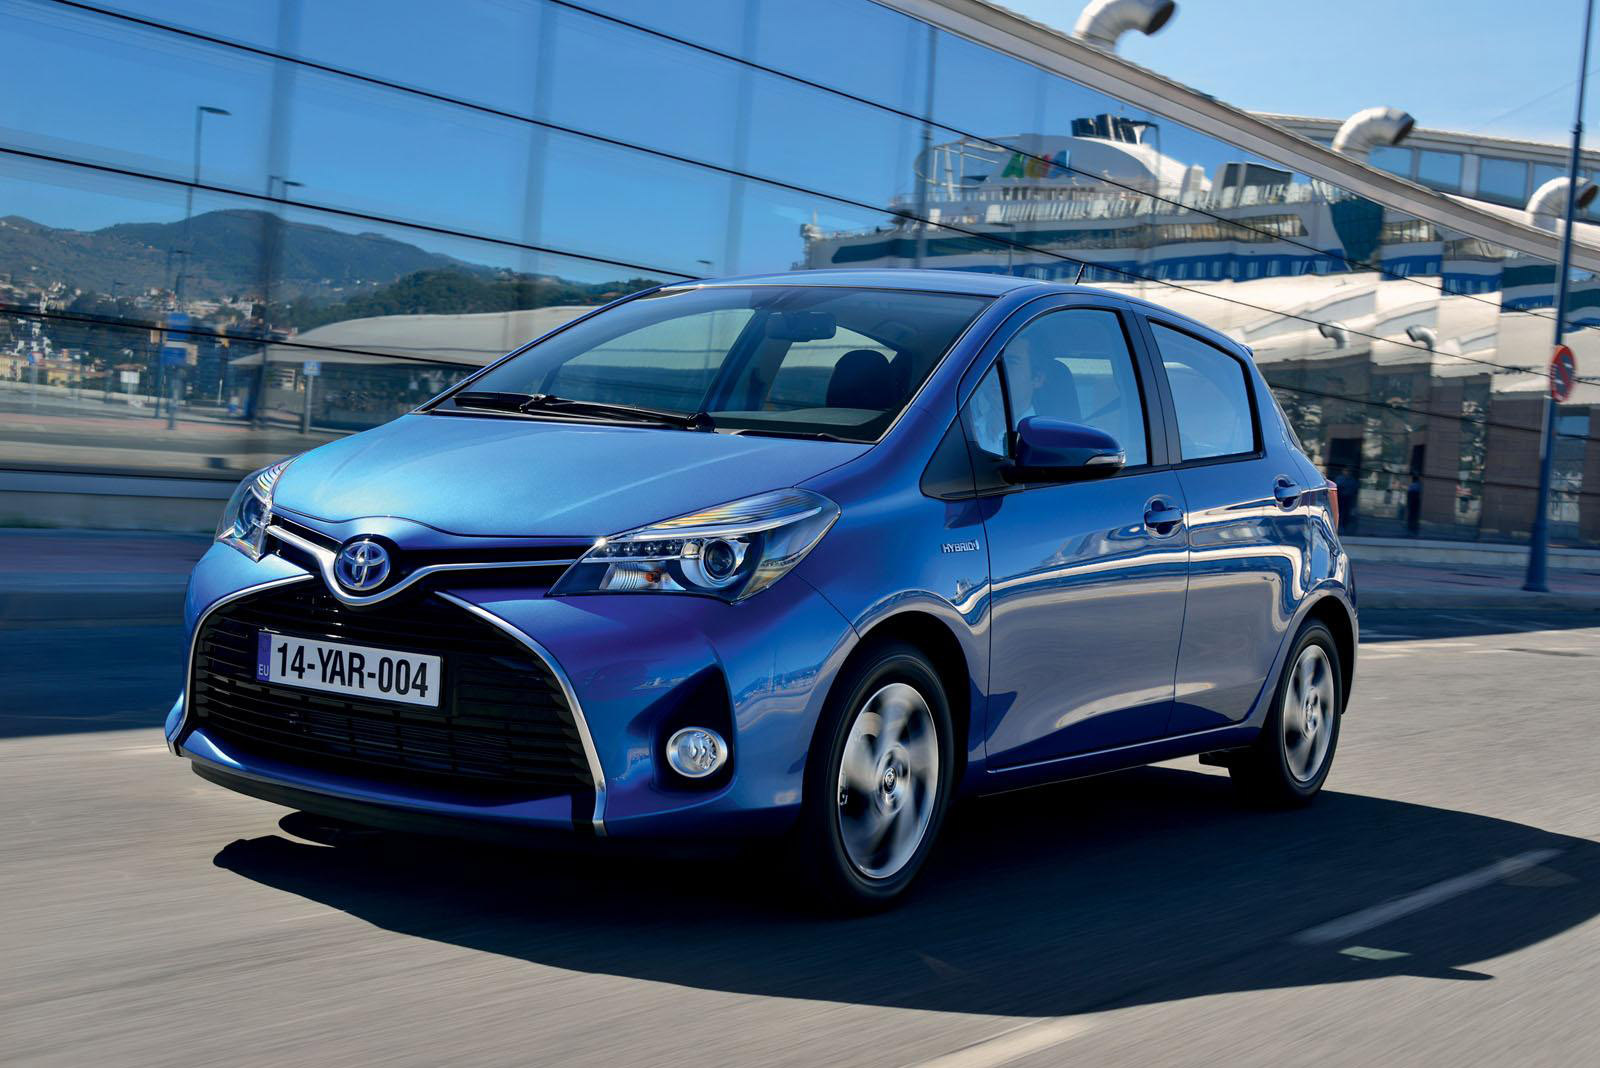 2015 toyota yaris full details and pictures. Black Bedroom Furniture Sets. Home Design Ideas